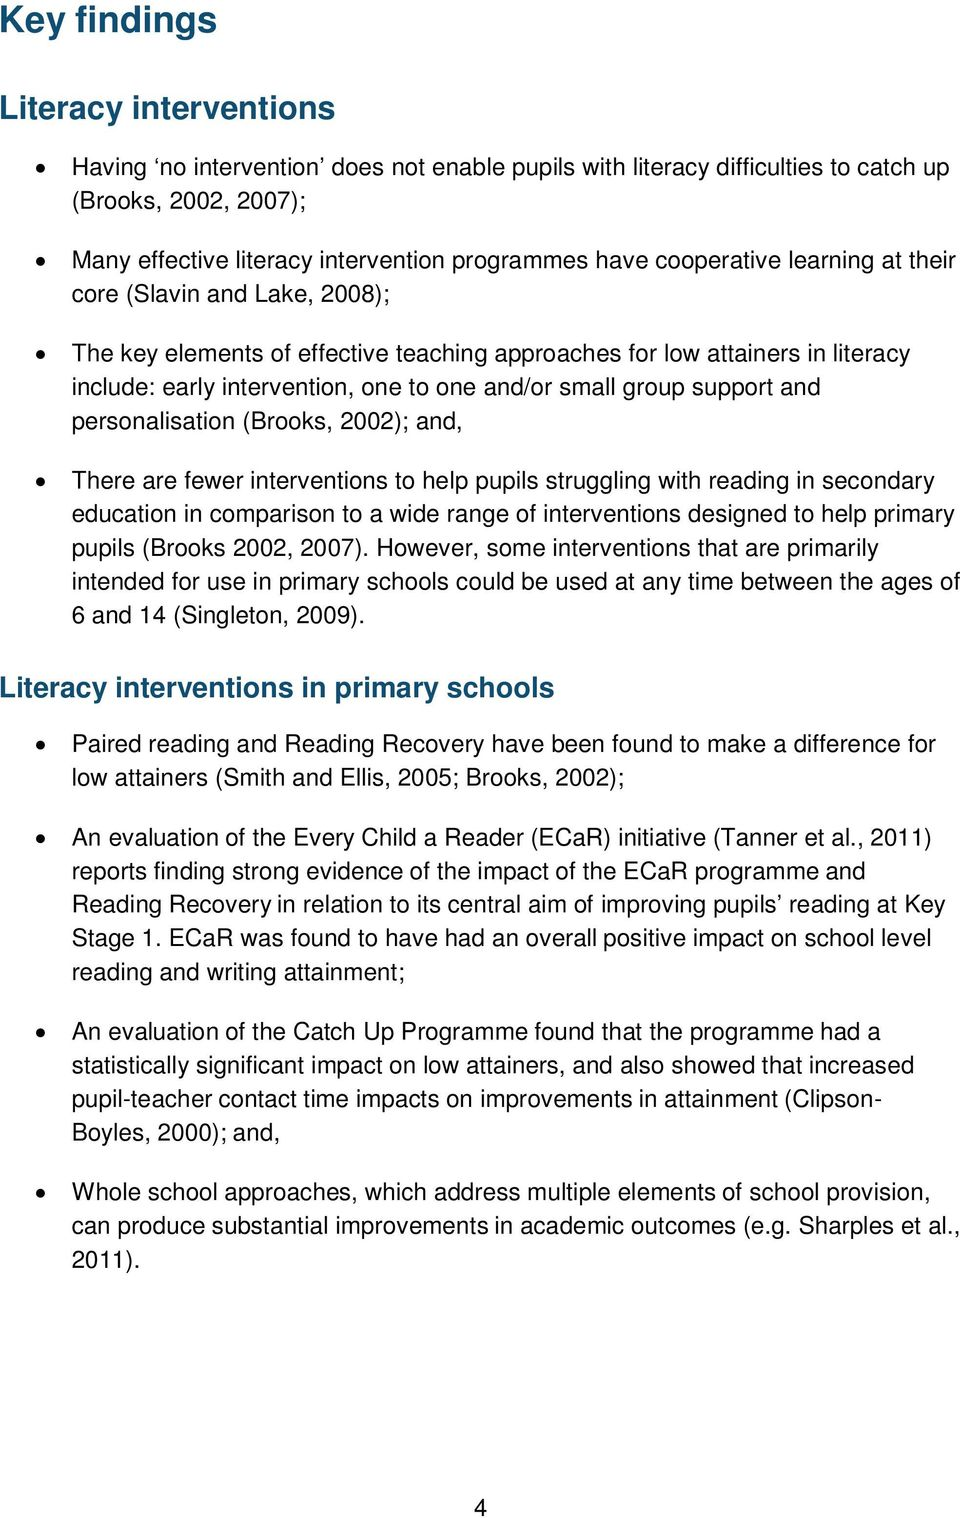 support and personalisation (Brooks, 2002); and, There are fewer interventions to help pupils struggling with reading in secondary education in comparison to a wide range of interventions designed to